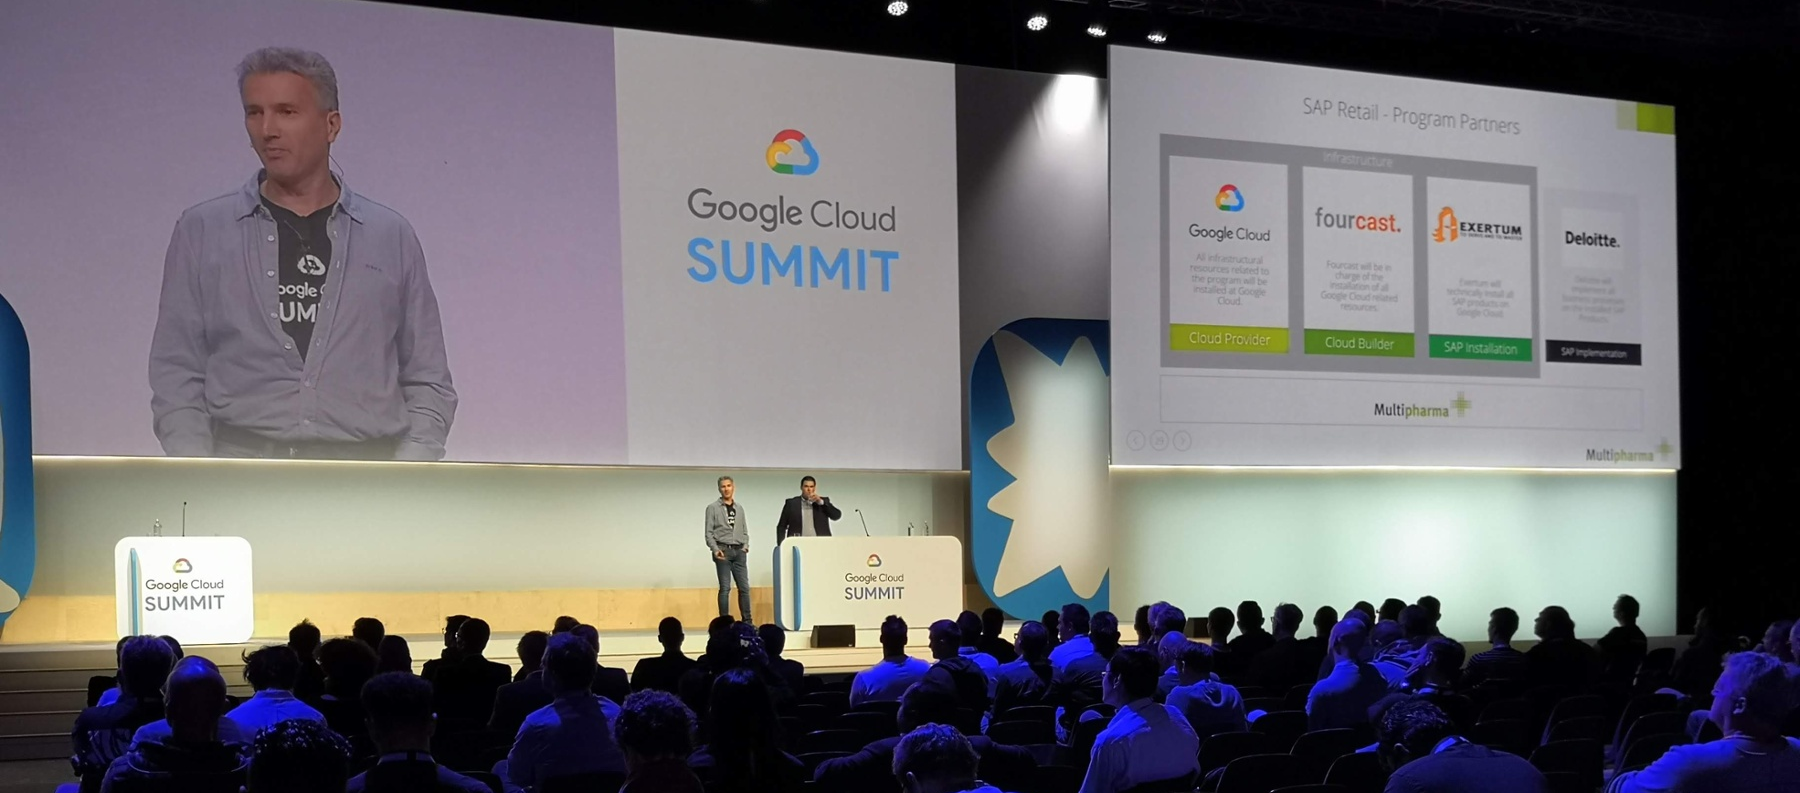 SAP Google Cloud Summit Multipharma-1